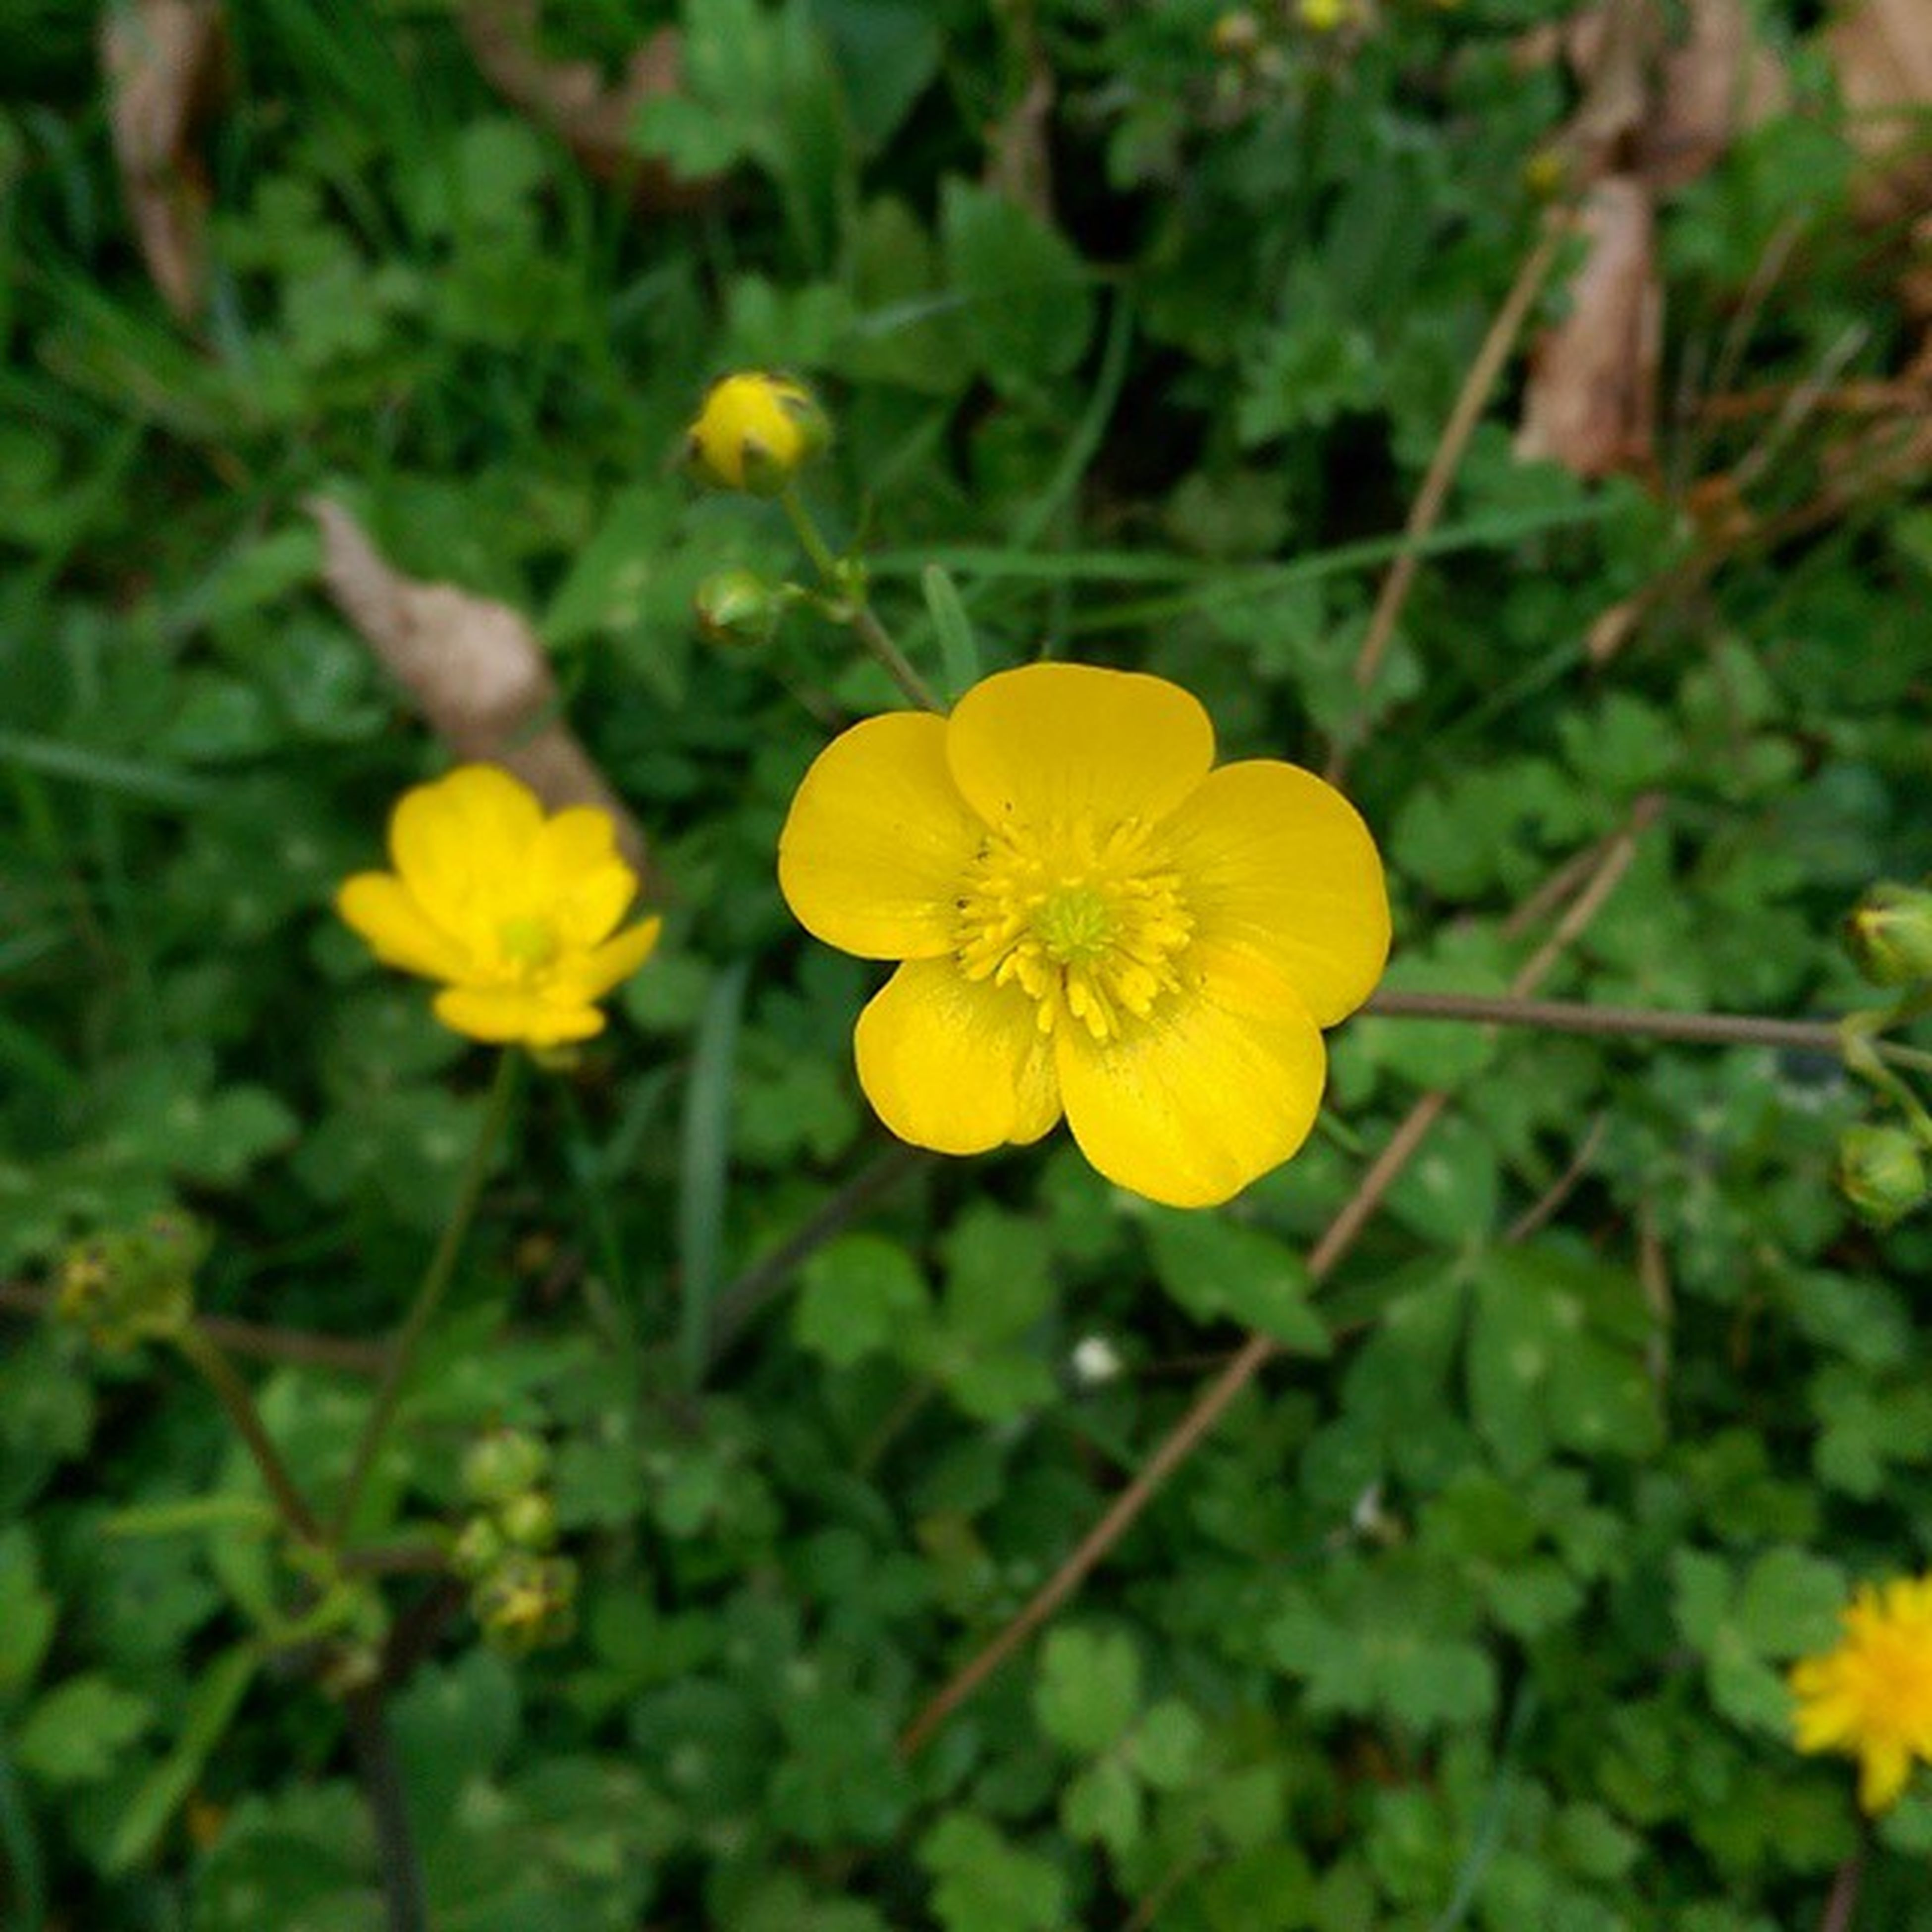 flower, petal, yellow, freshness, fragility, flower head, growth, beauty in nature, blooming, focus on foreground, nature, close-up, plant, in bloom, stem, pollen, blossom, day, outdoors, single flower